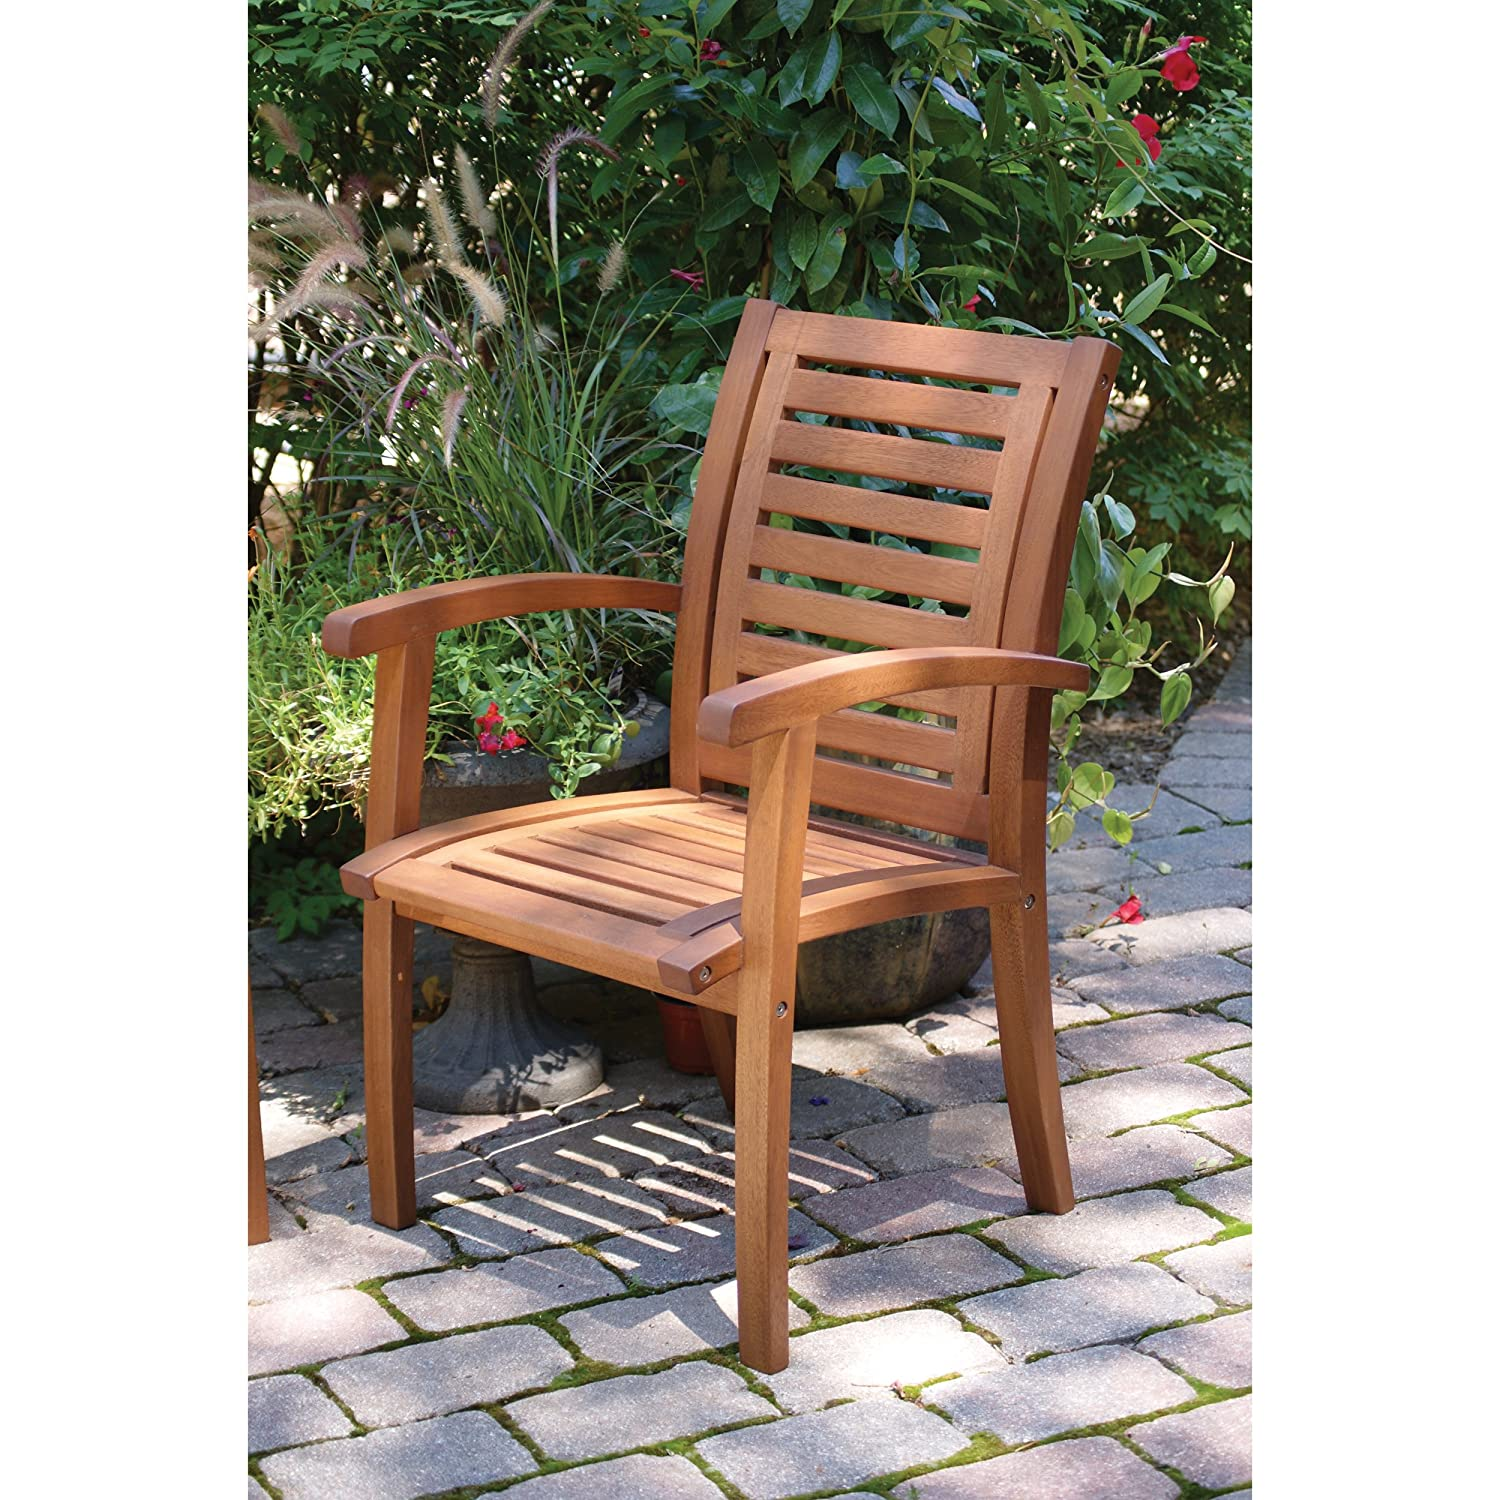 Superb Amazon.com : Outdoor Interiors 21090 Luxe Eucalyptus Arm Chair : Patio  Dining Chairs : Garden U0026 Outdoor